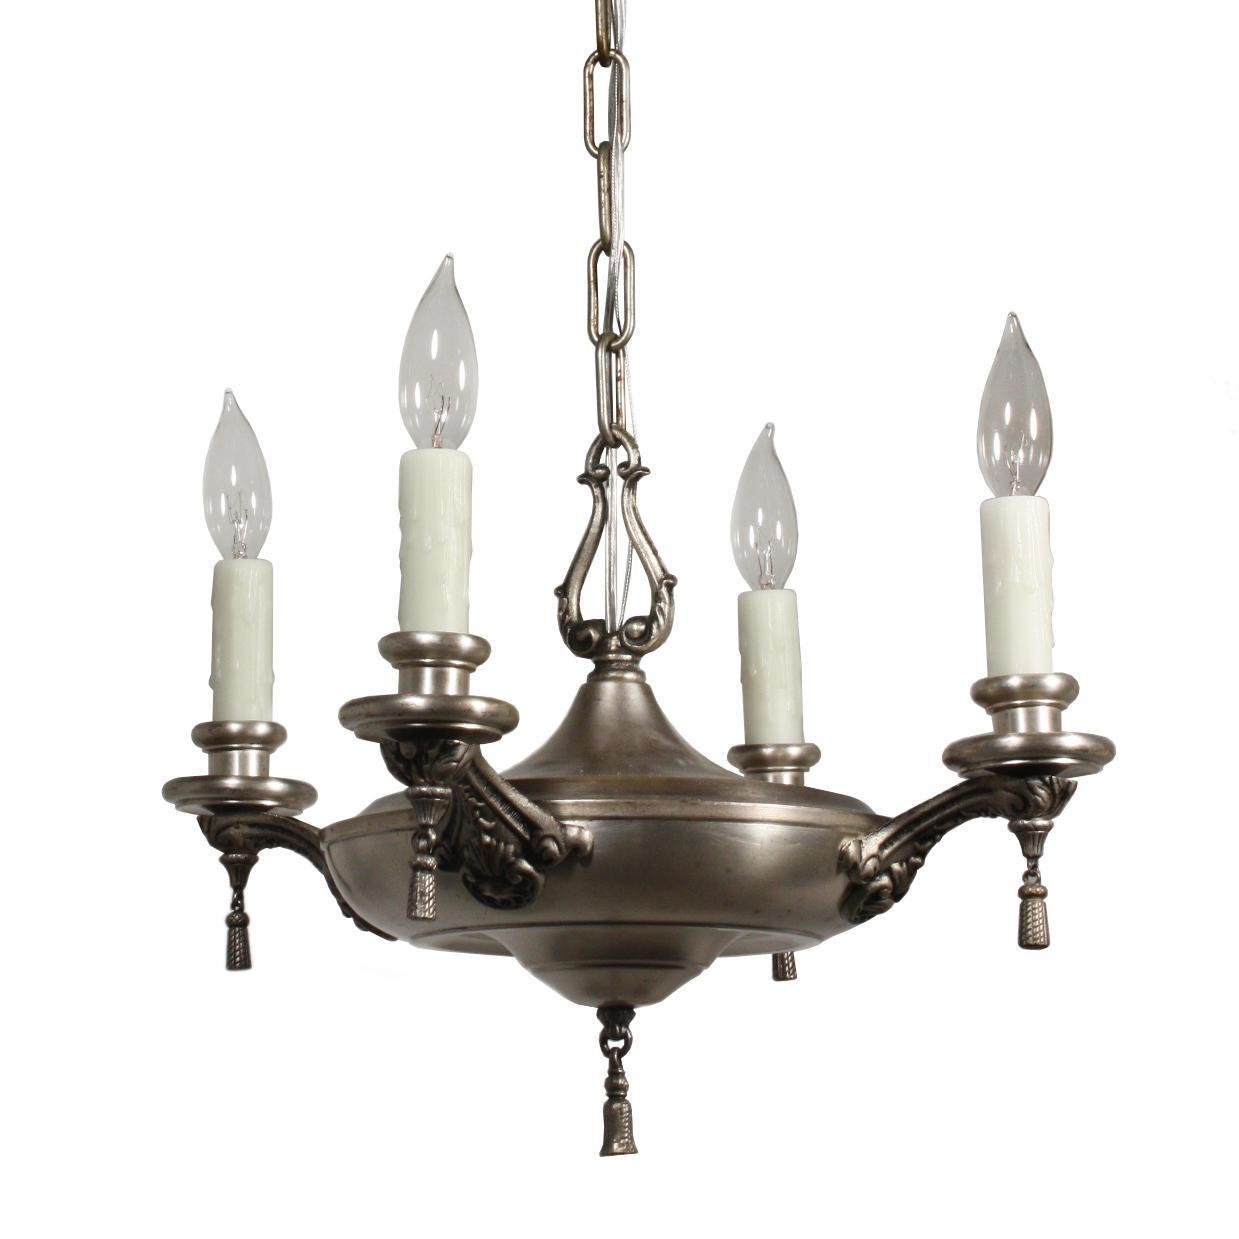 Marvelous Antique Neoclassical Silver Plated Chandelier, c. 1910